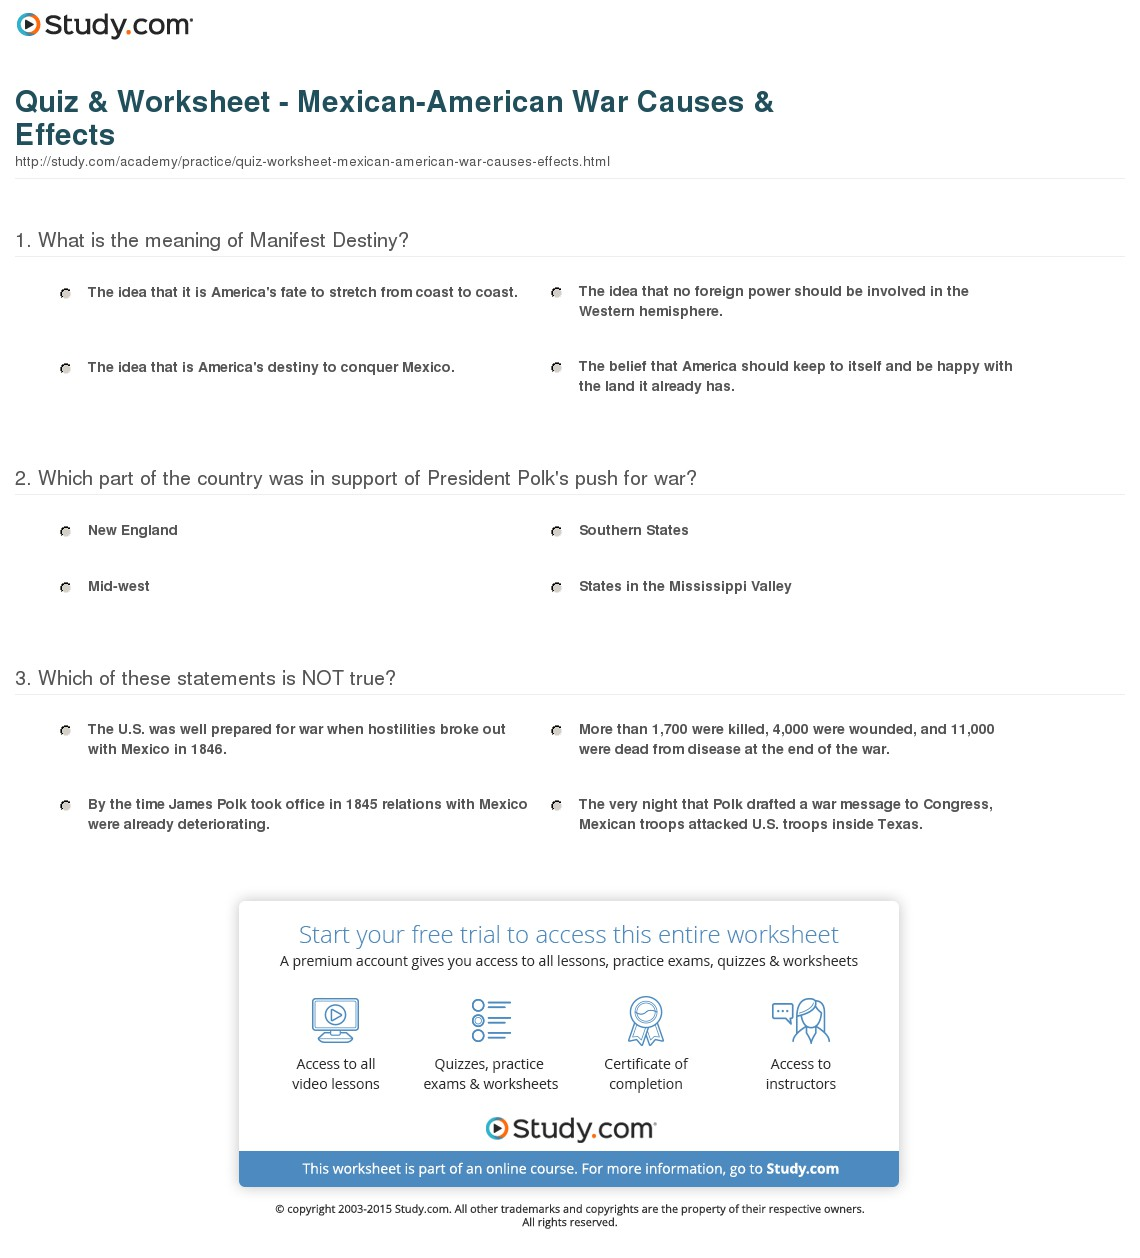 013 Quiz Worksheet Mexican American War Causes Effects Manifest Destiny Essay Impressive Prompt Outline Introduction Full